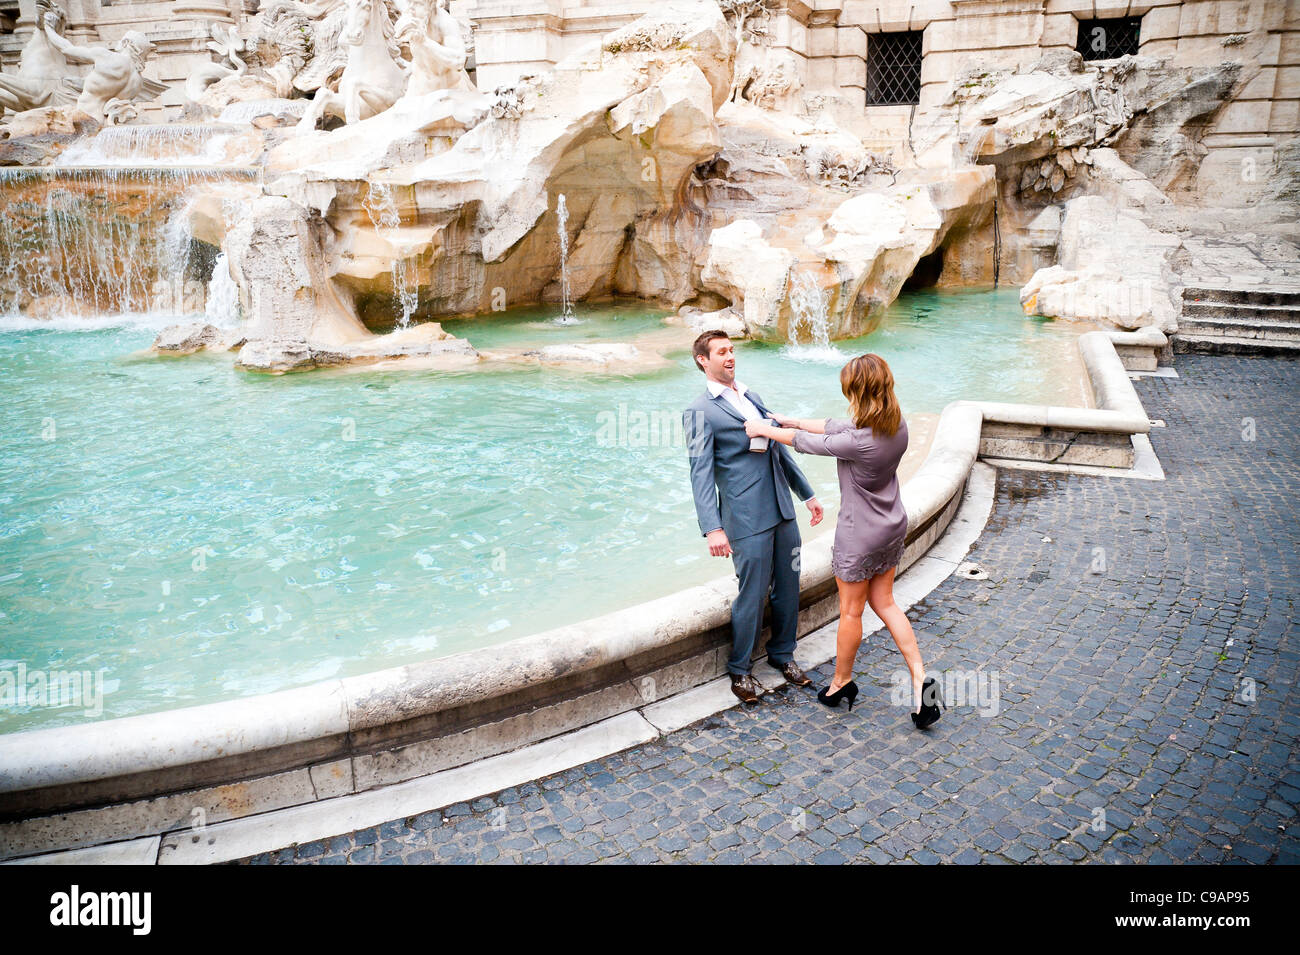 Woman pushing man into the Trevi fountain as a joke - Stock Image